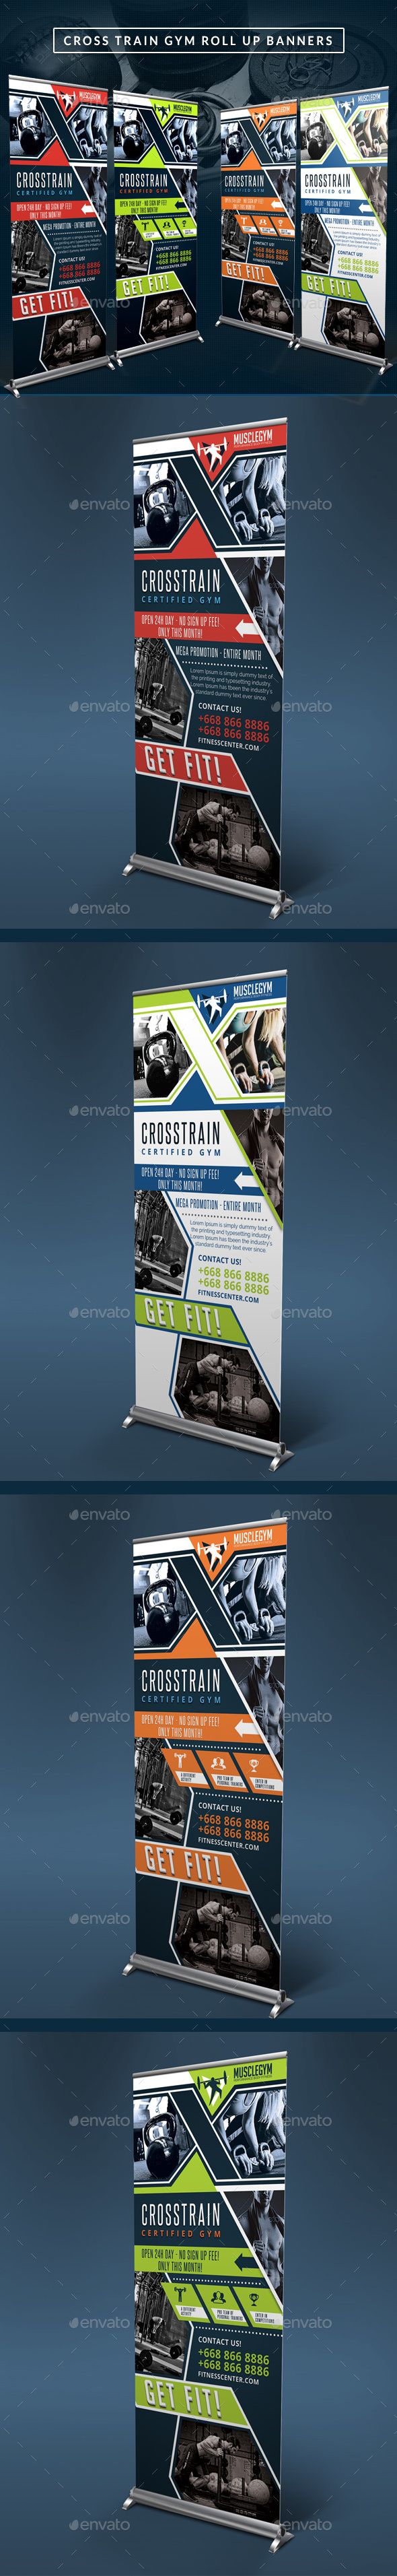 Cross Training Gym Roll Up Banners - Signage Print Templates